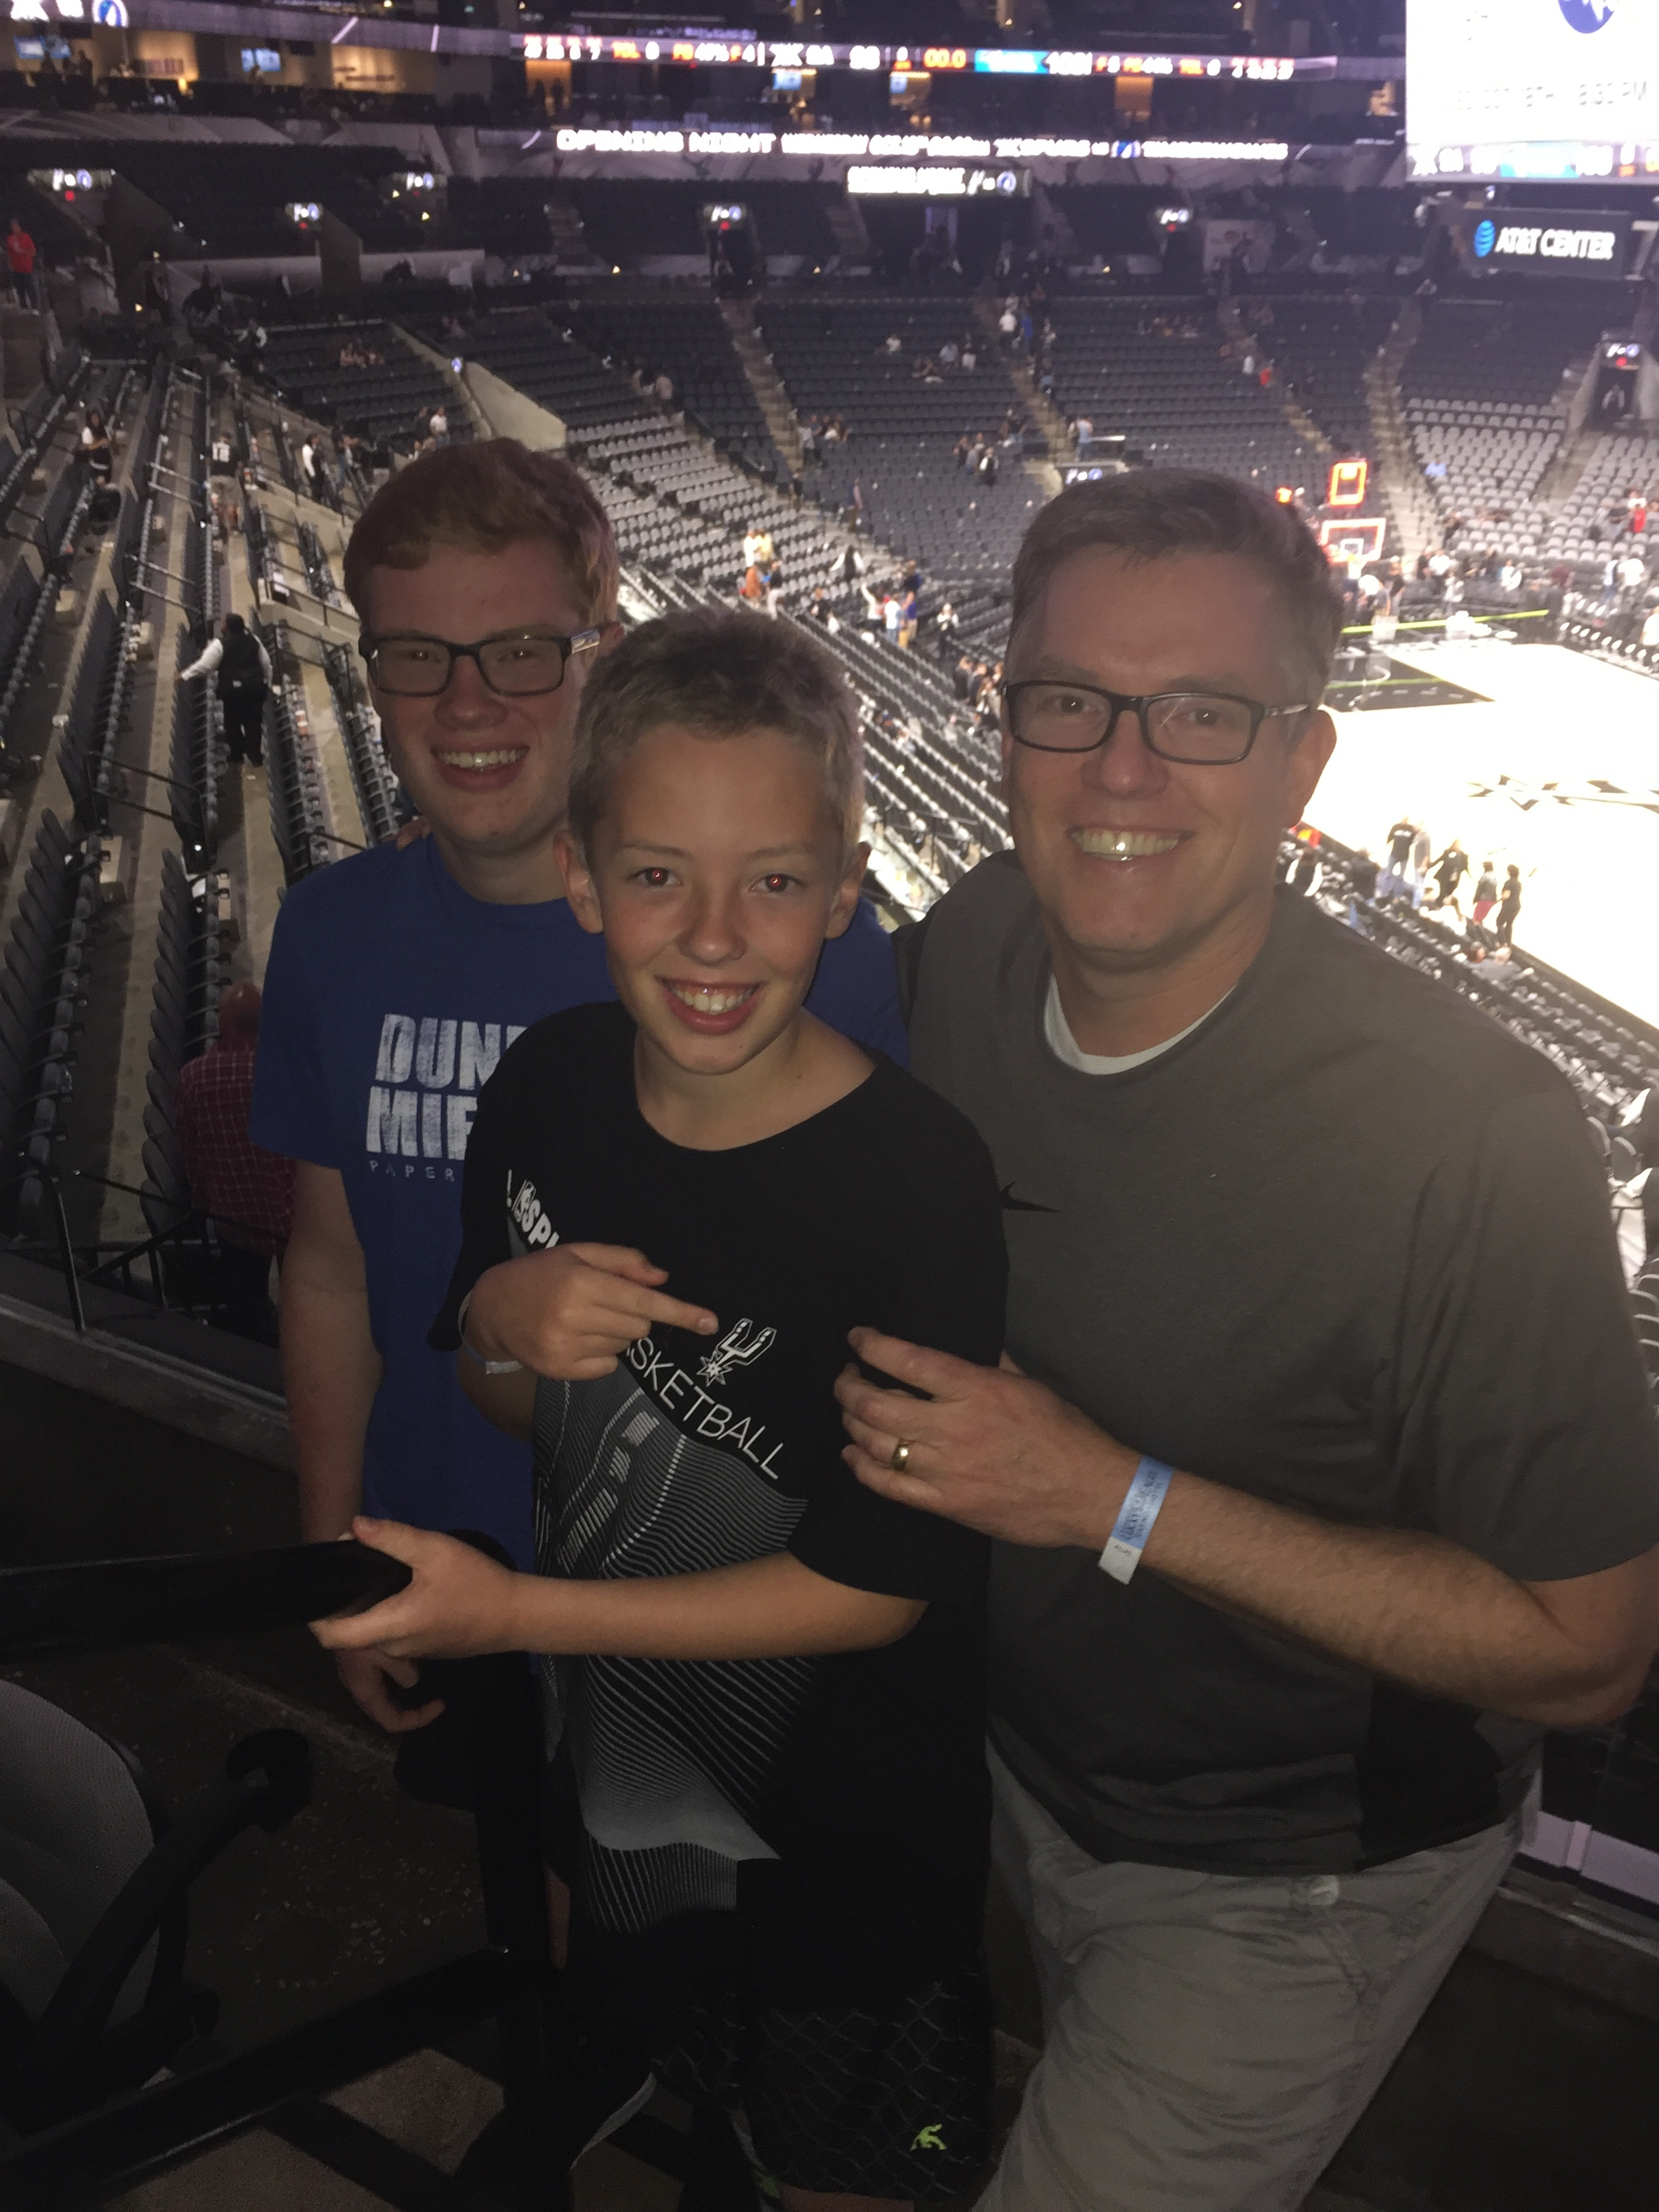 Basketball date for the boys.